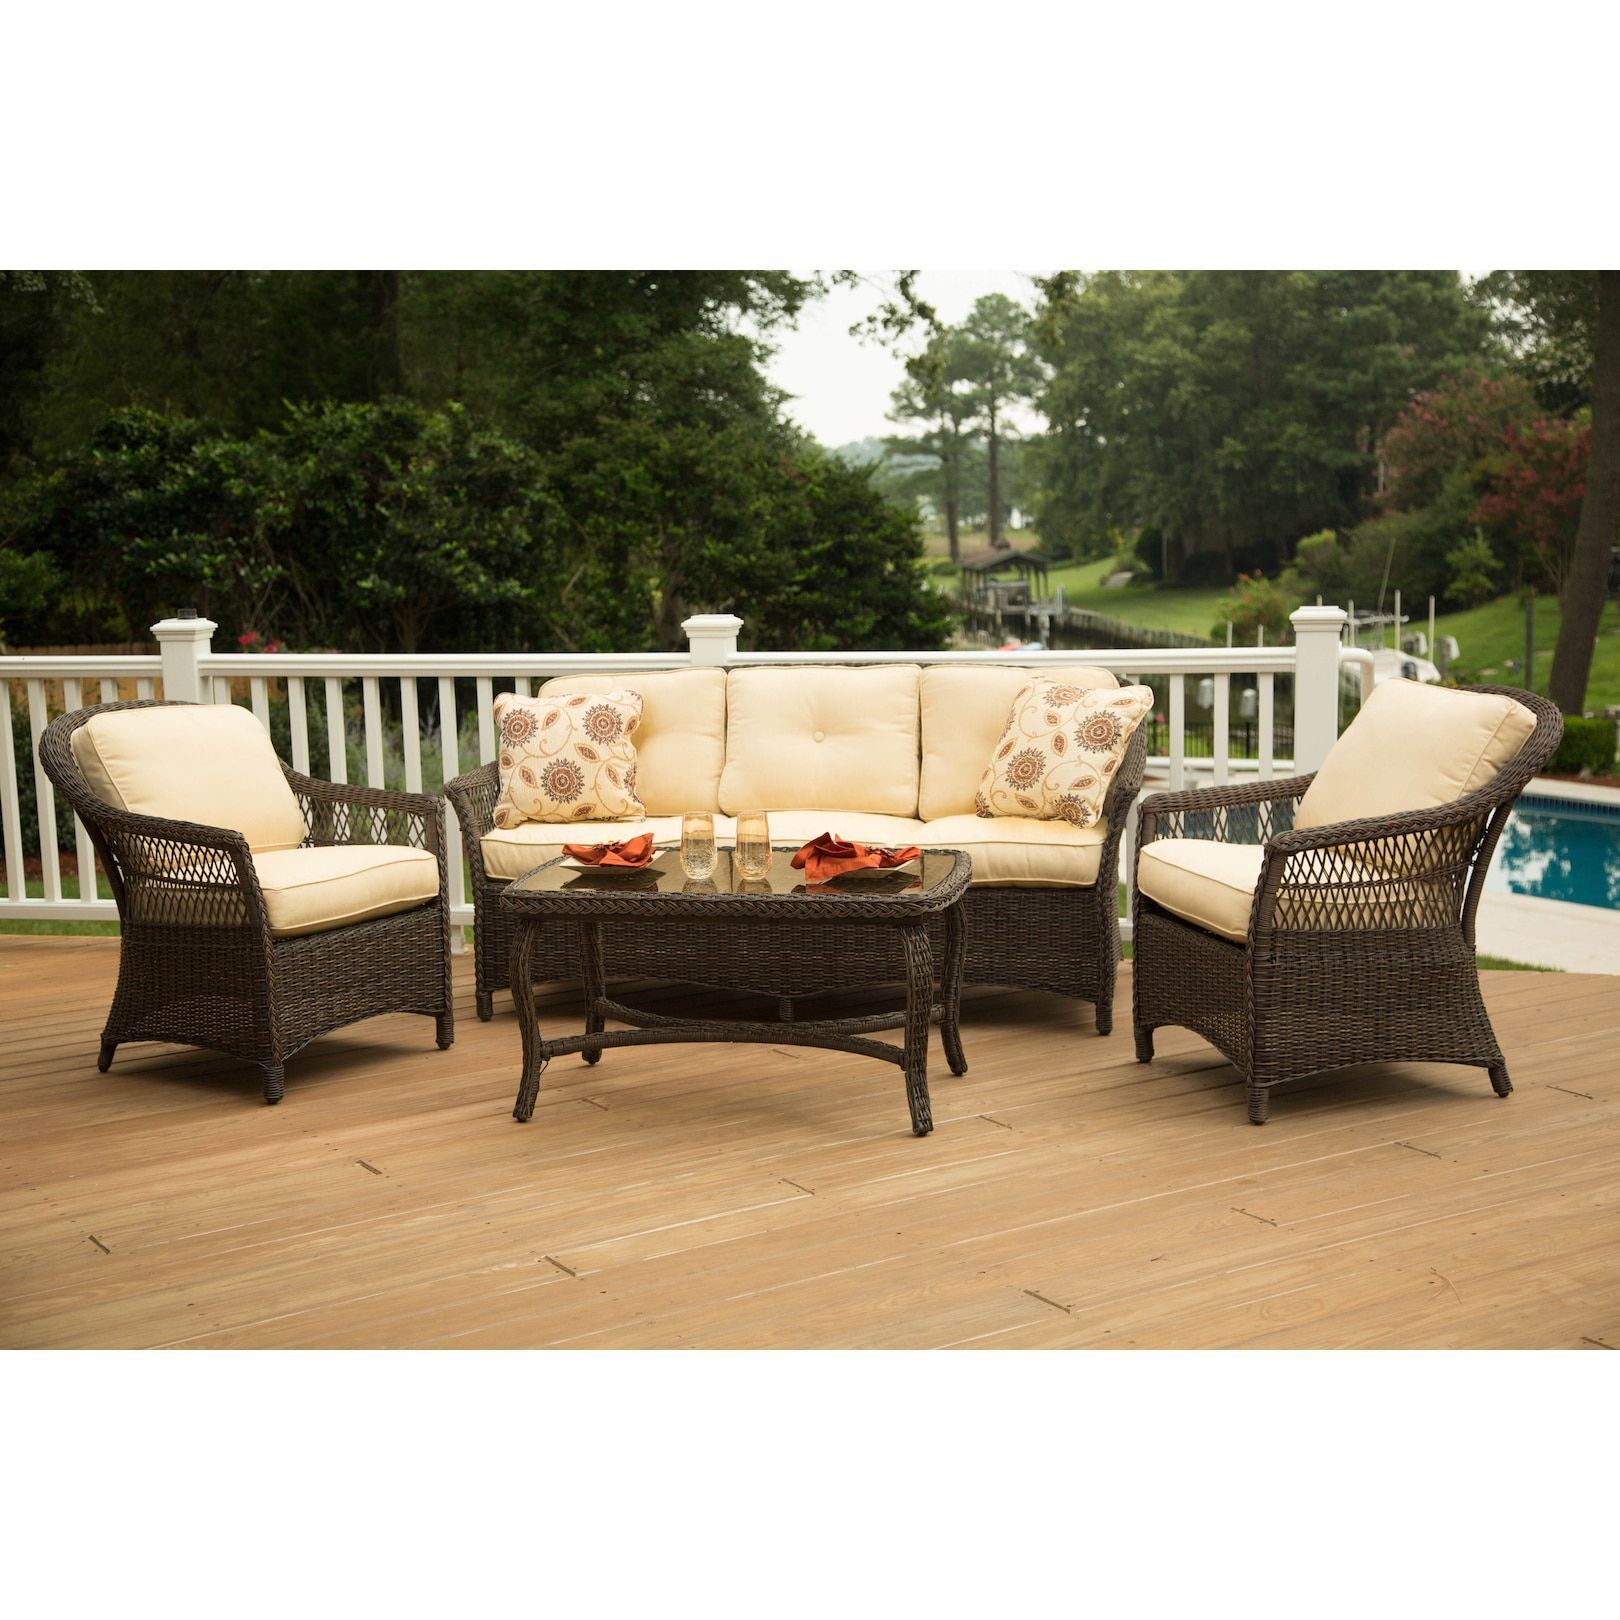 Pin On Outdoor Furniture Ideas